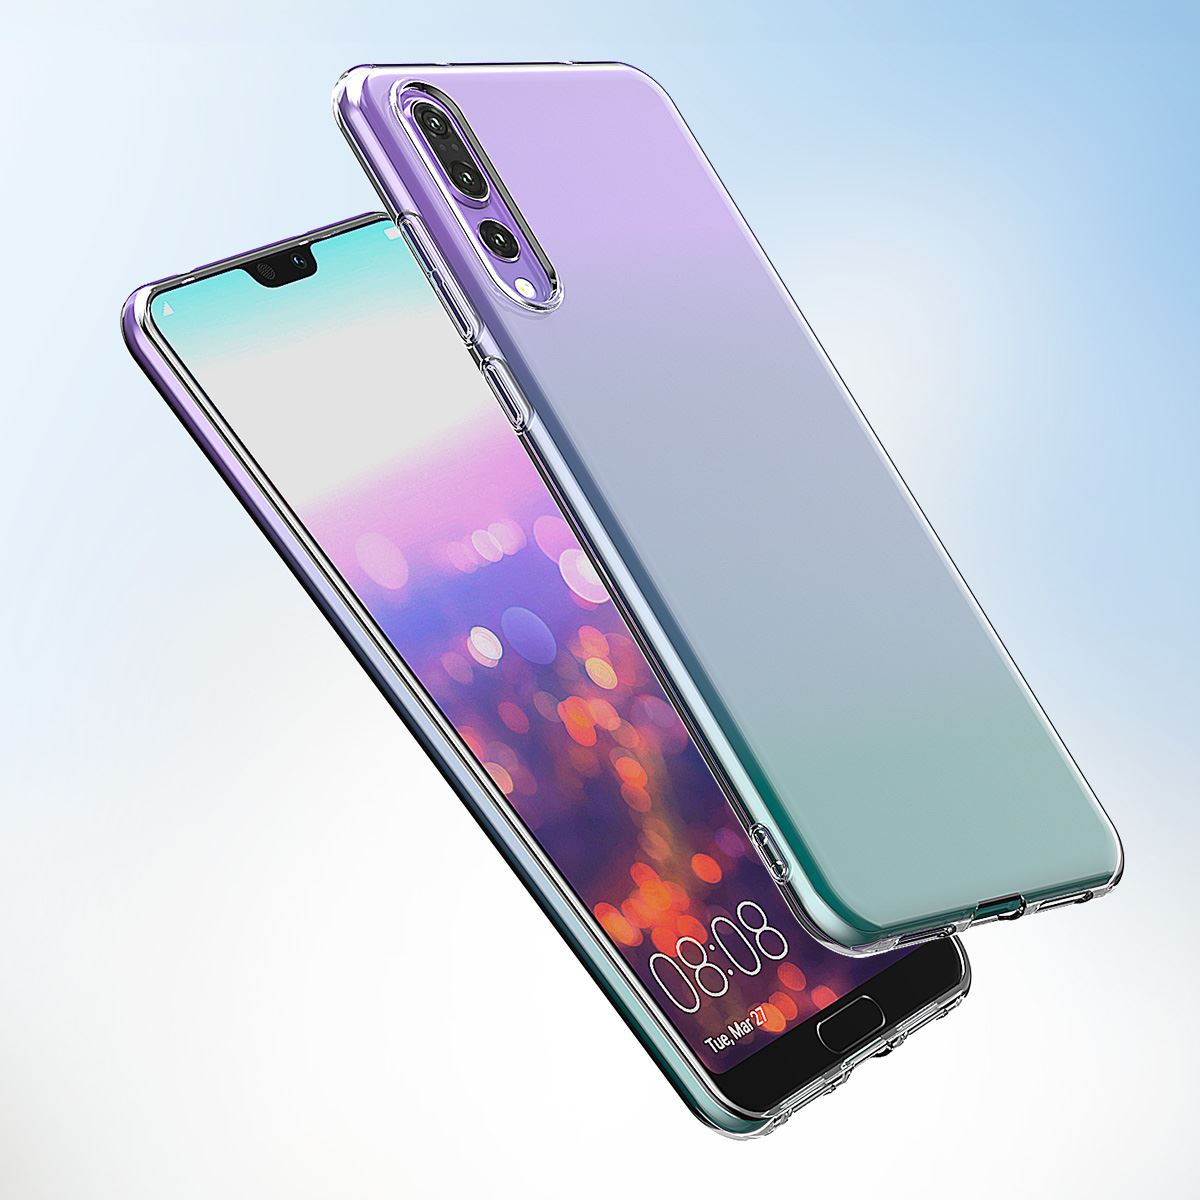 Shockproof-Silicone-Protective-Clear-Gel-Cover-Case-For-Huawei-P20-Pro-P-Smart thumbnail 58